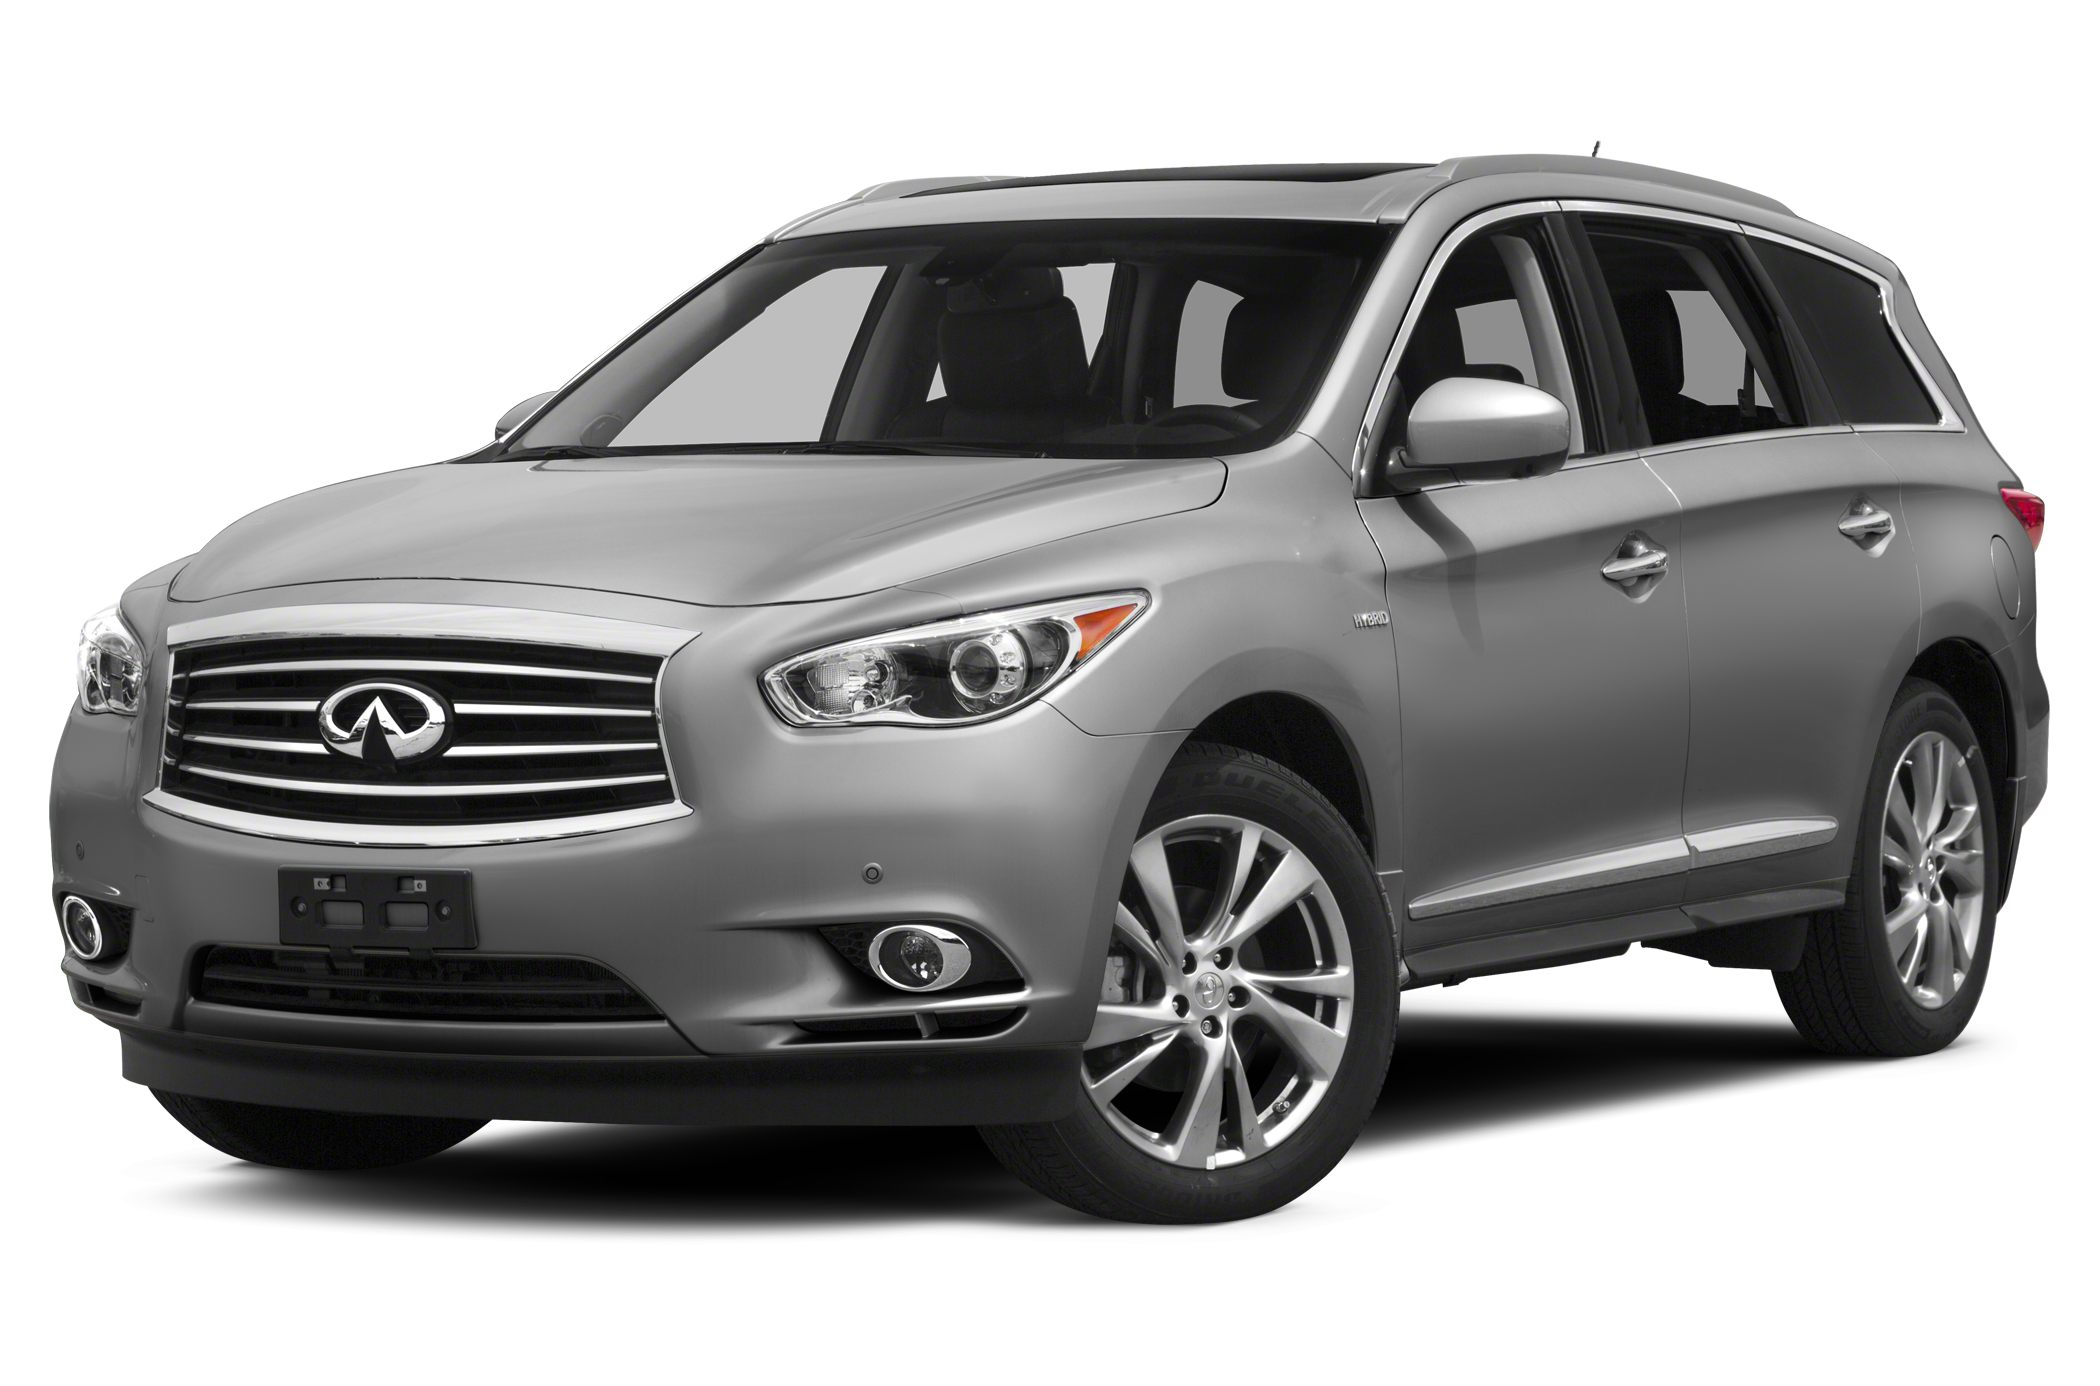 2014 Infiniti QX60 Hybrid Base SUV for sale in Little Rock for $52,140 with 0 miles